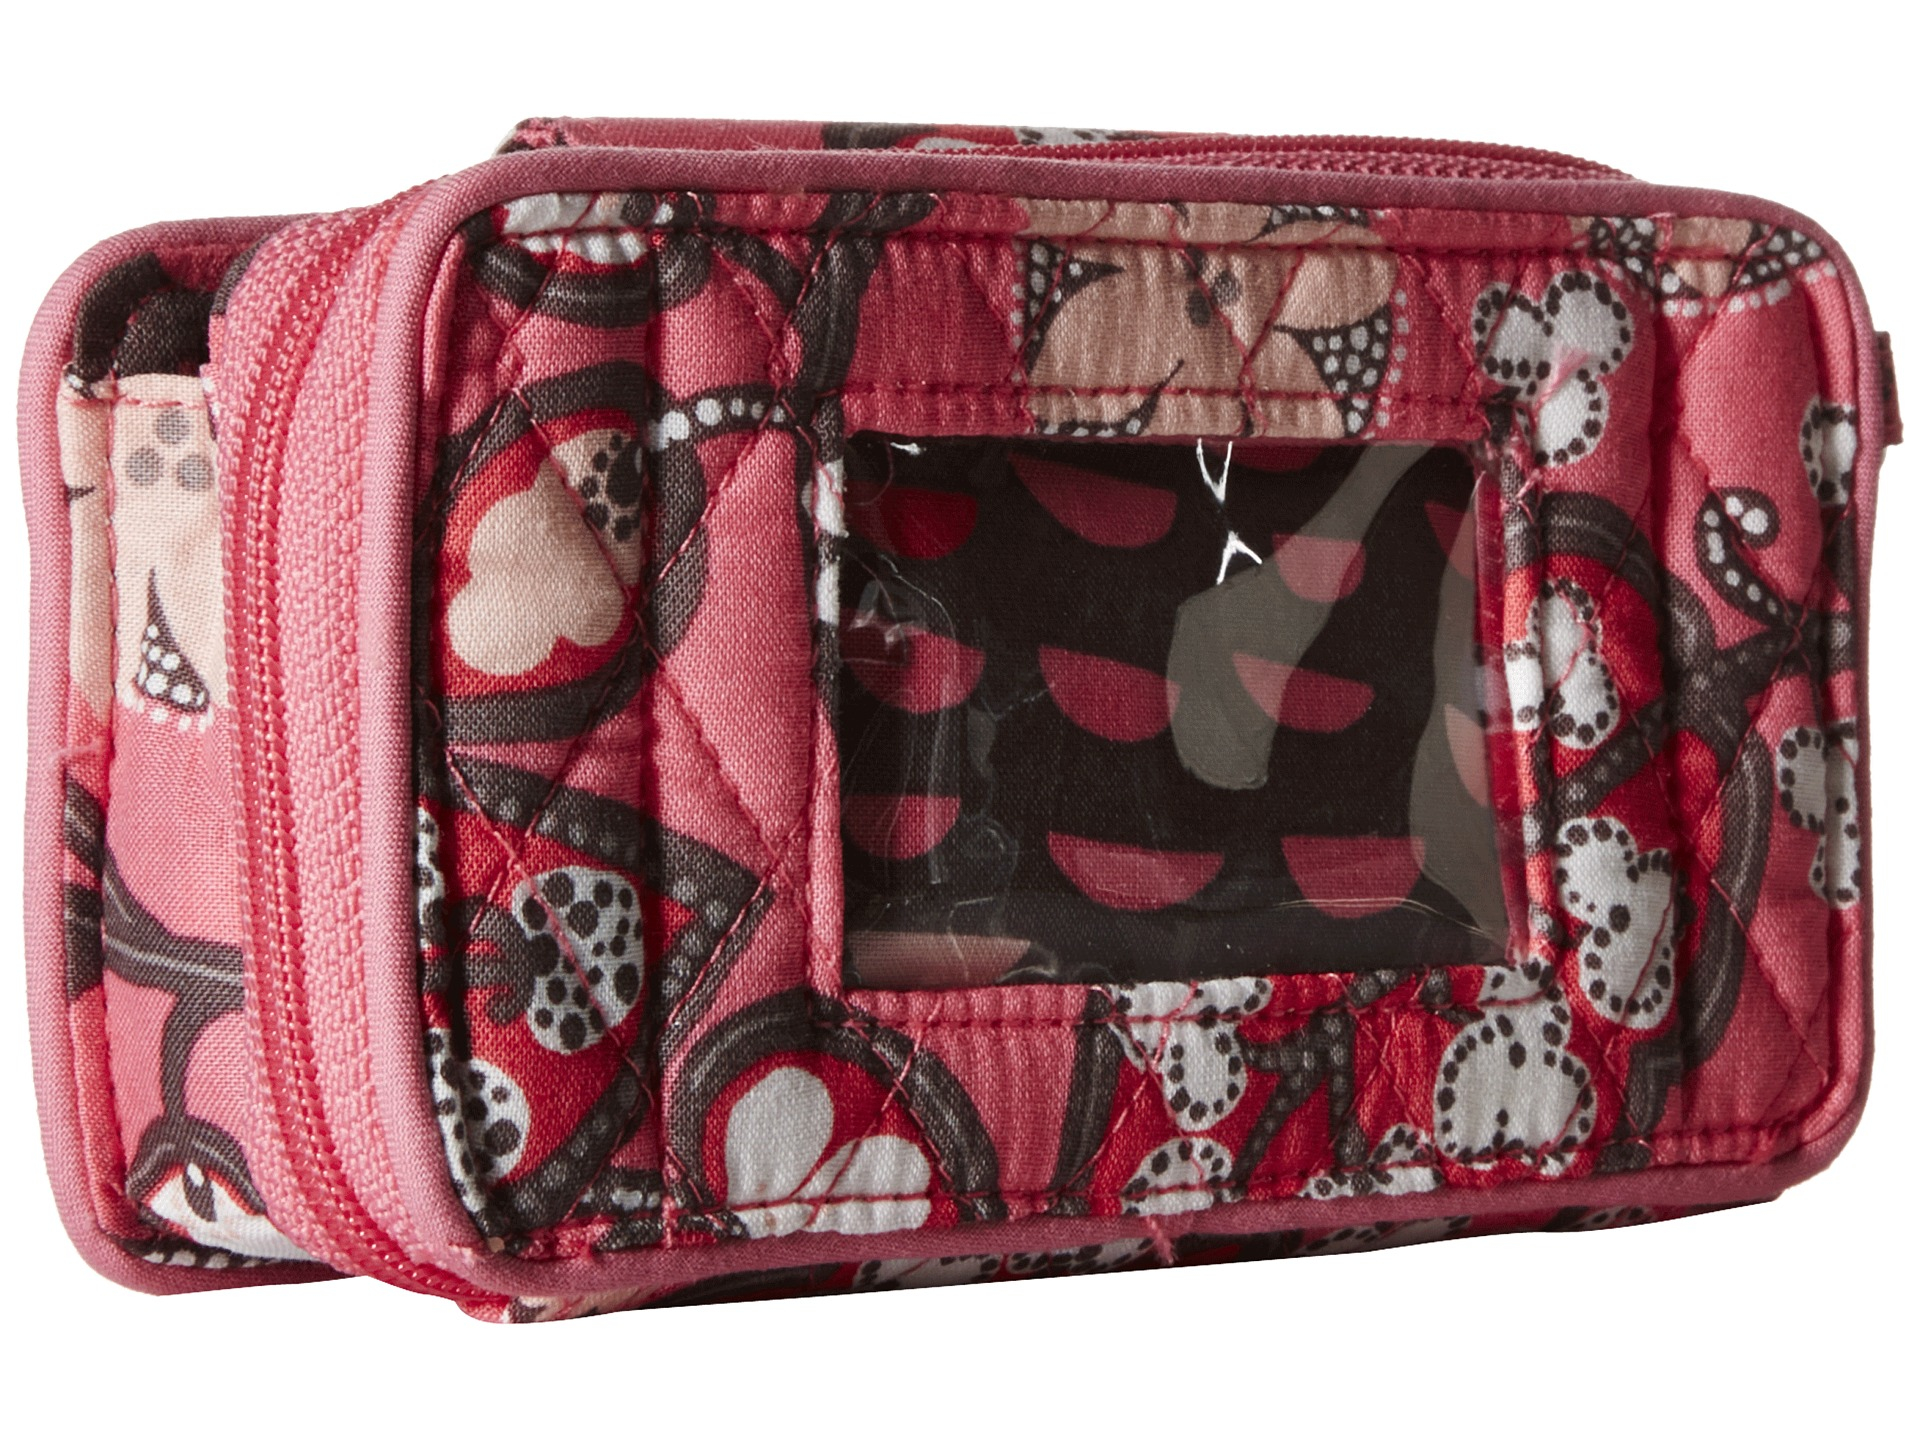 new product 97e22 4f0b4 Women's Pink Smartphone Wristlet For Iphone 6